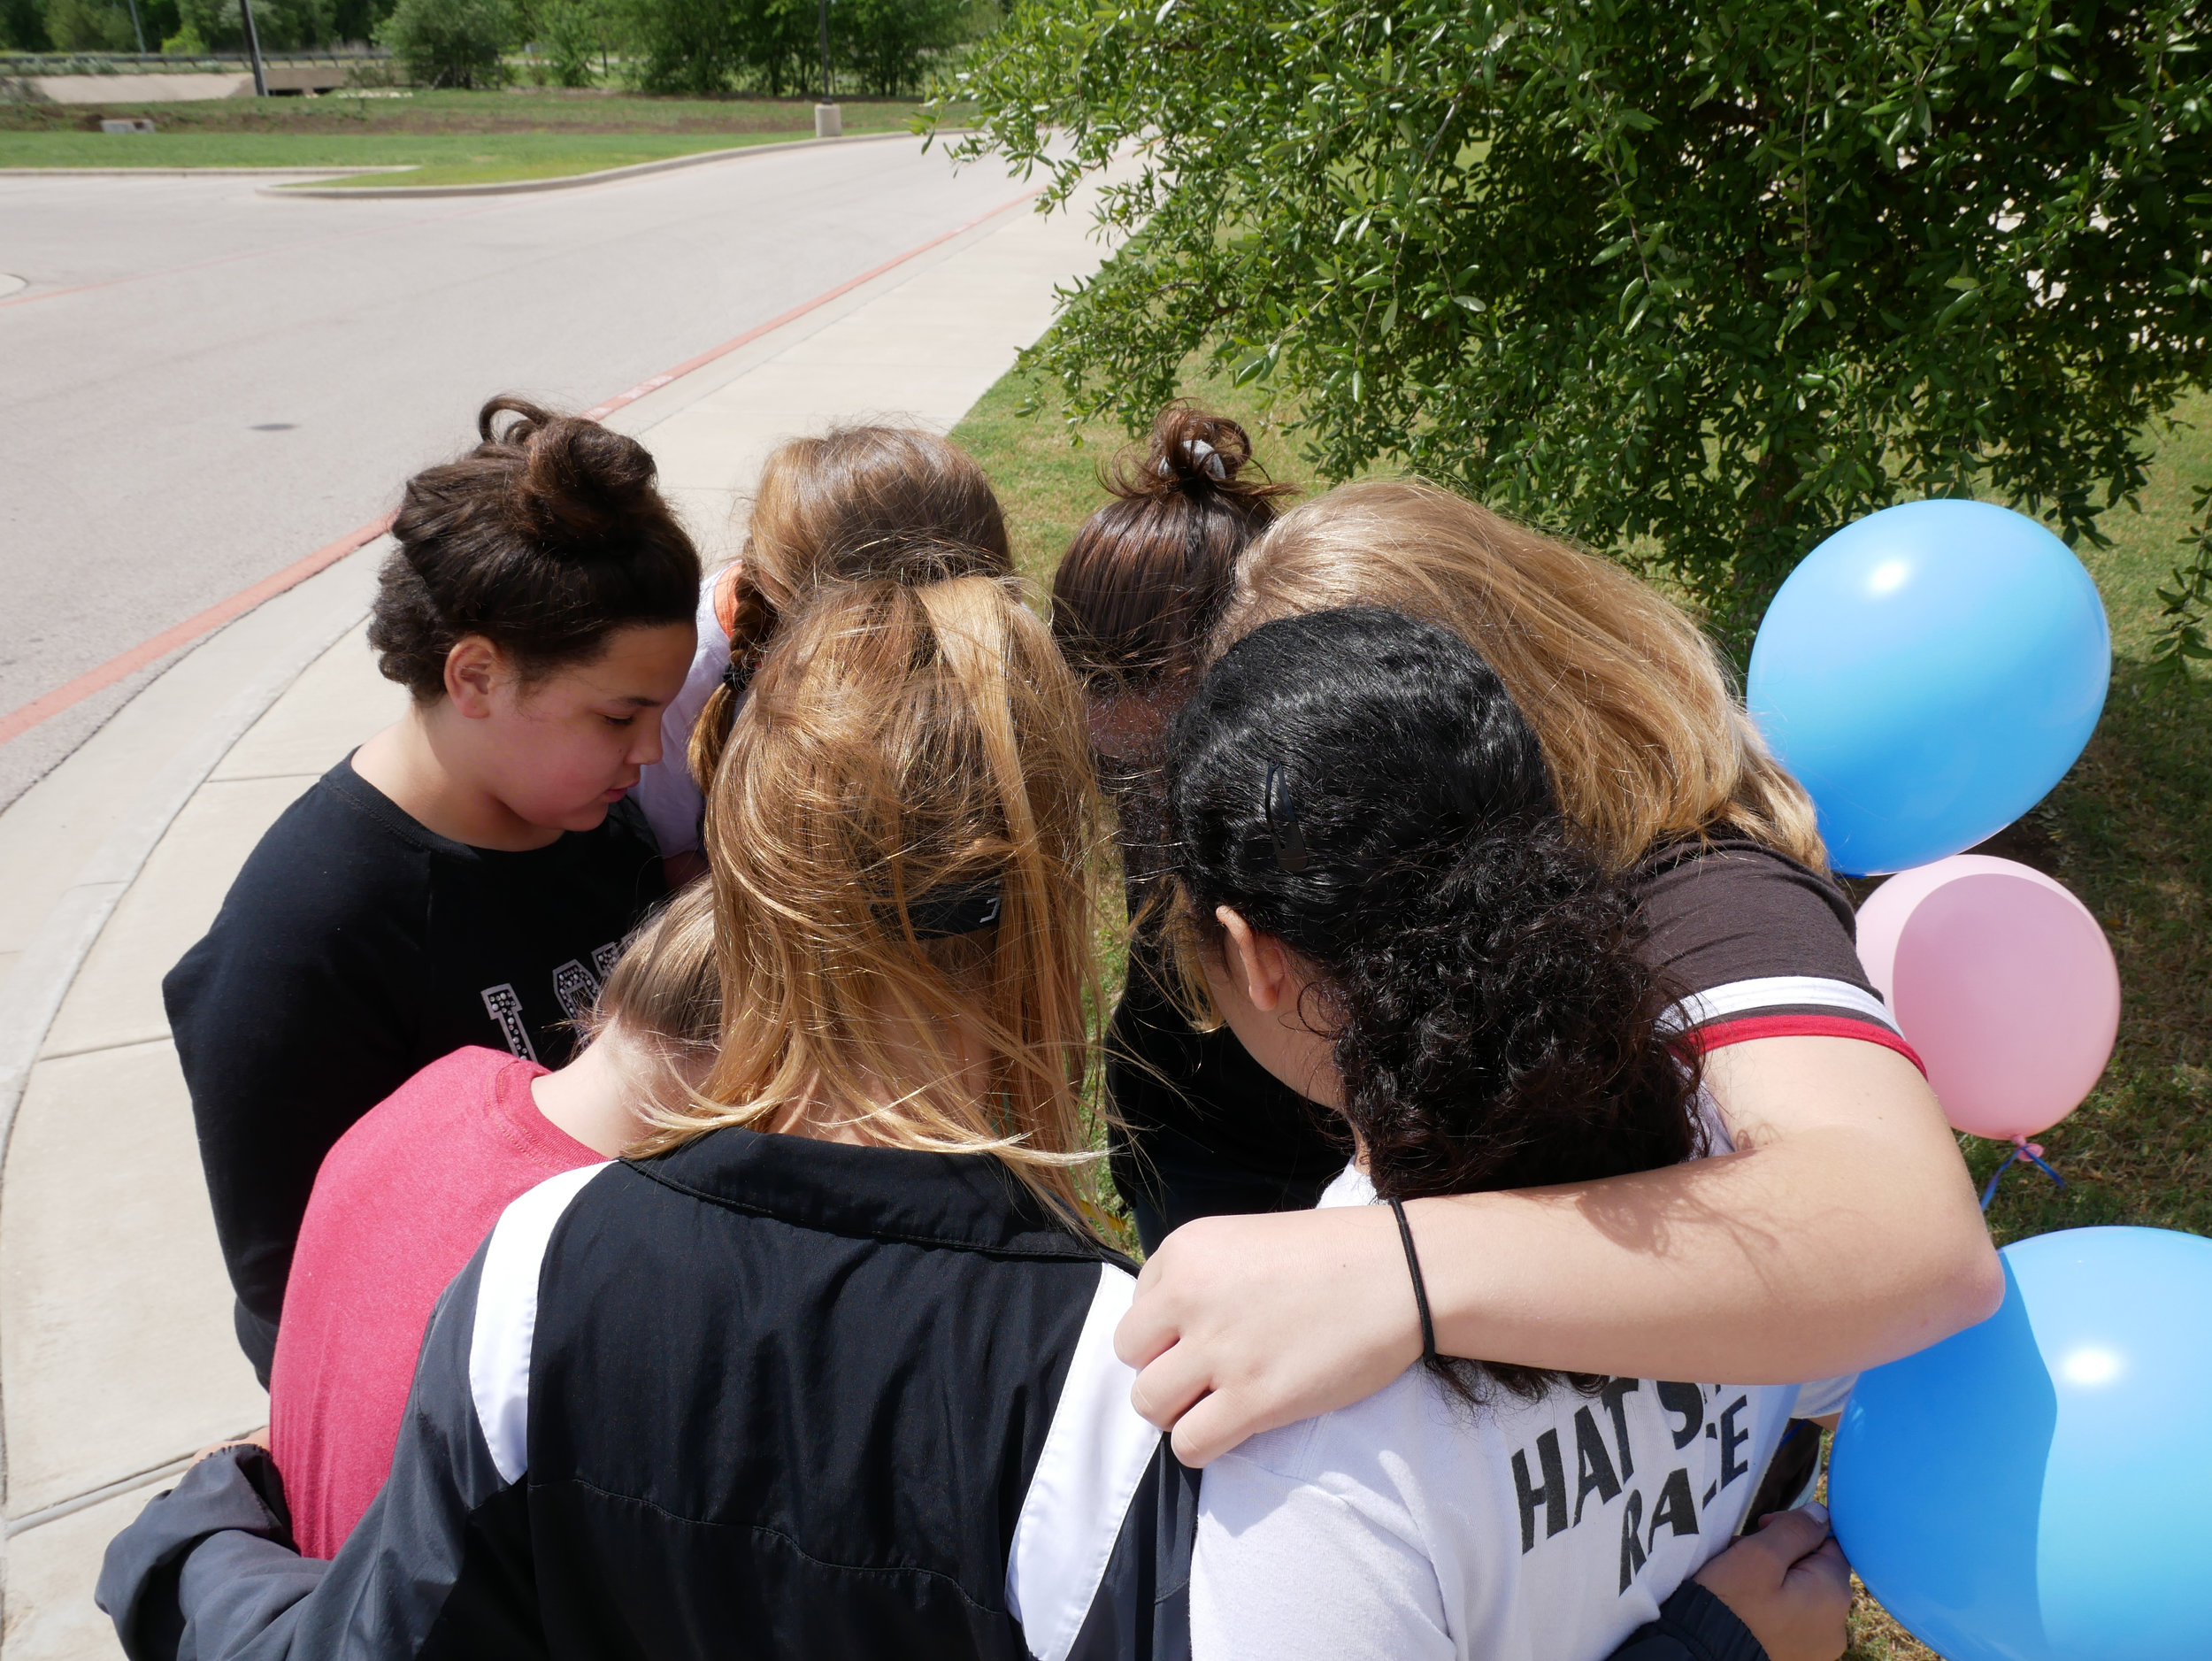 Girls praying together before releasing balloons.